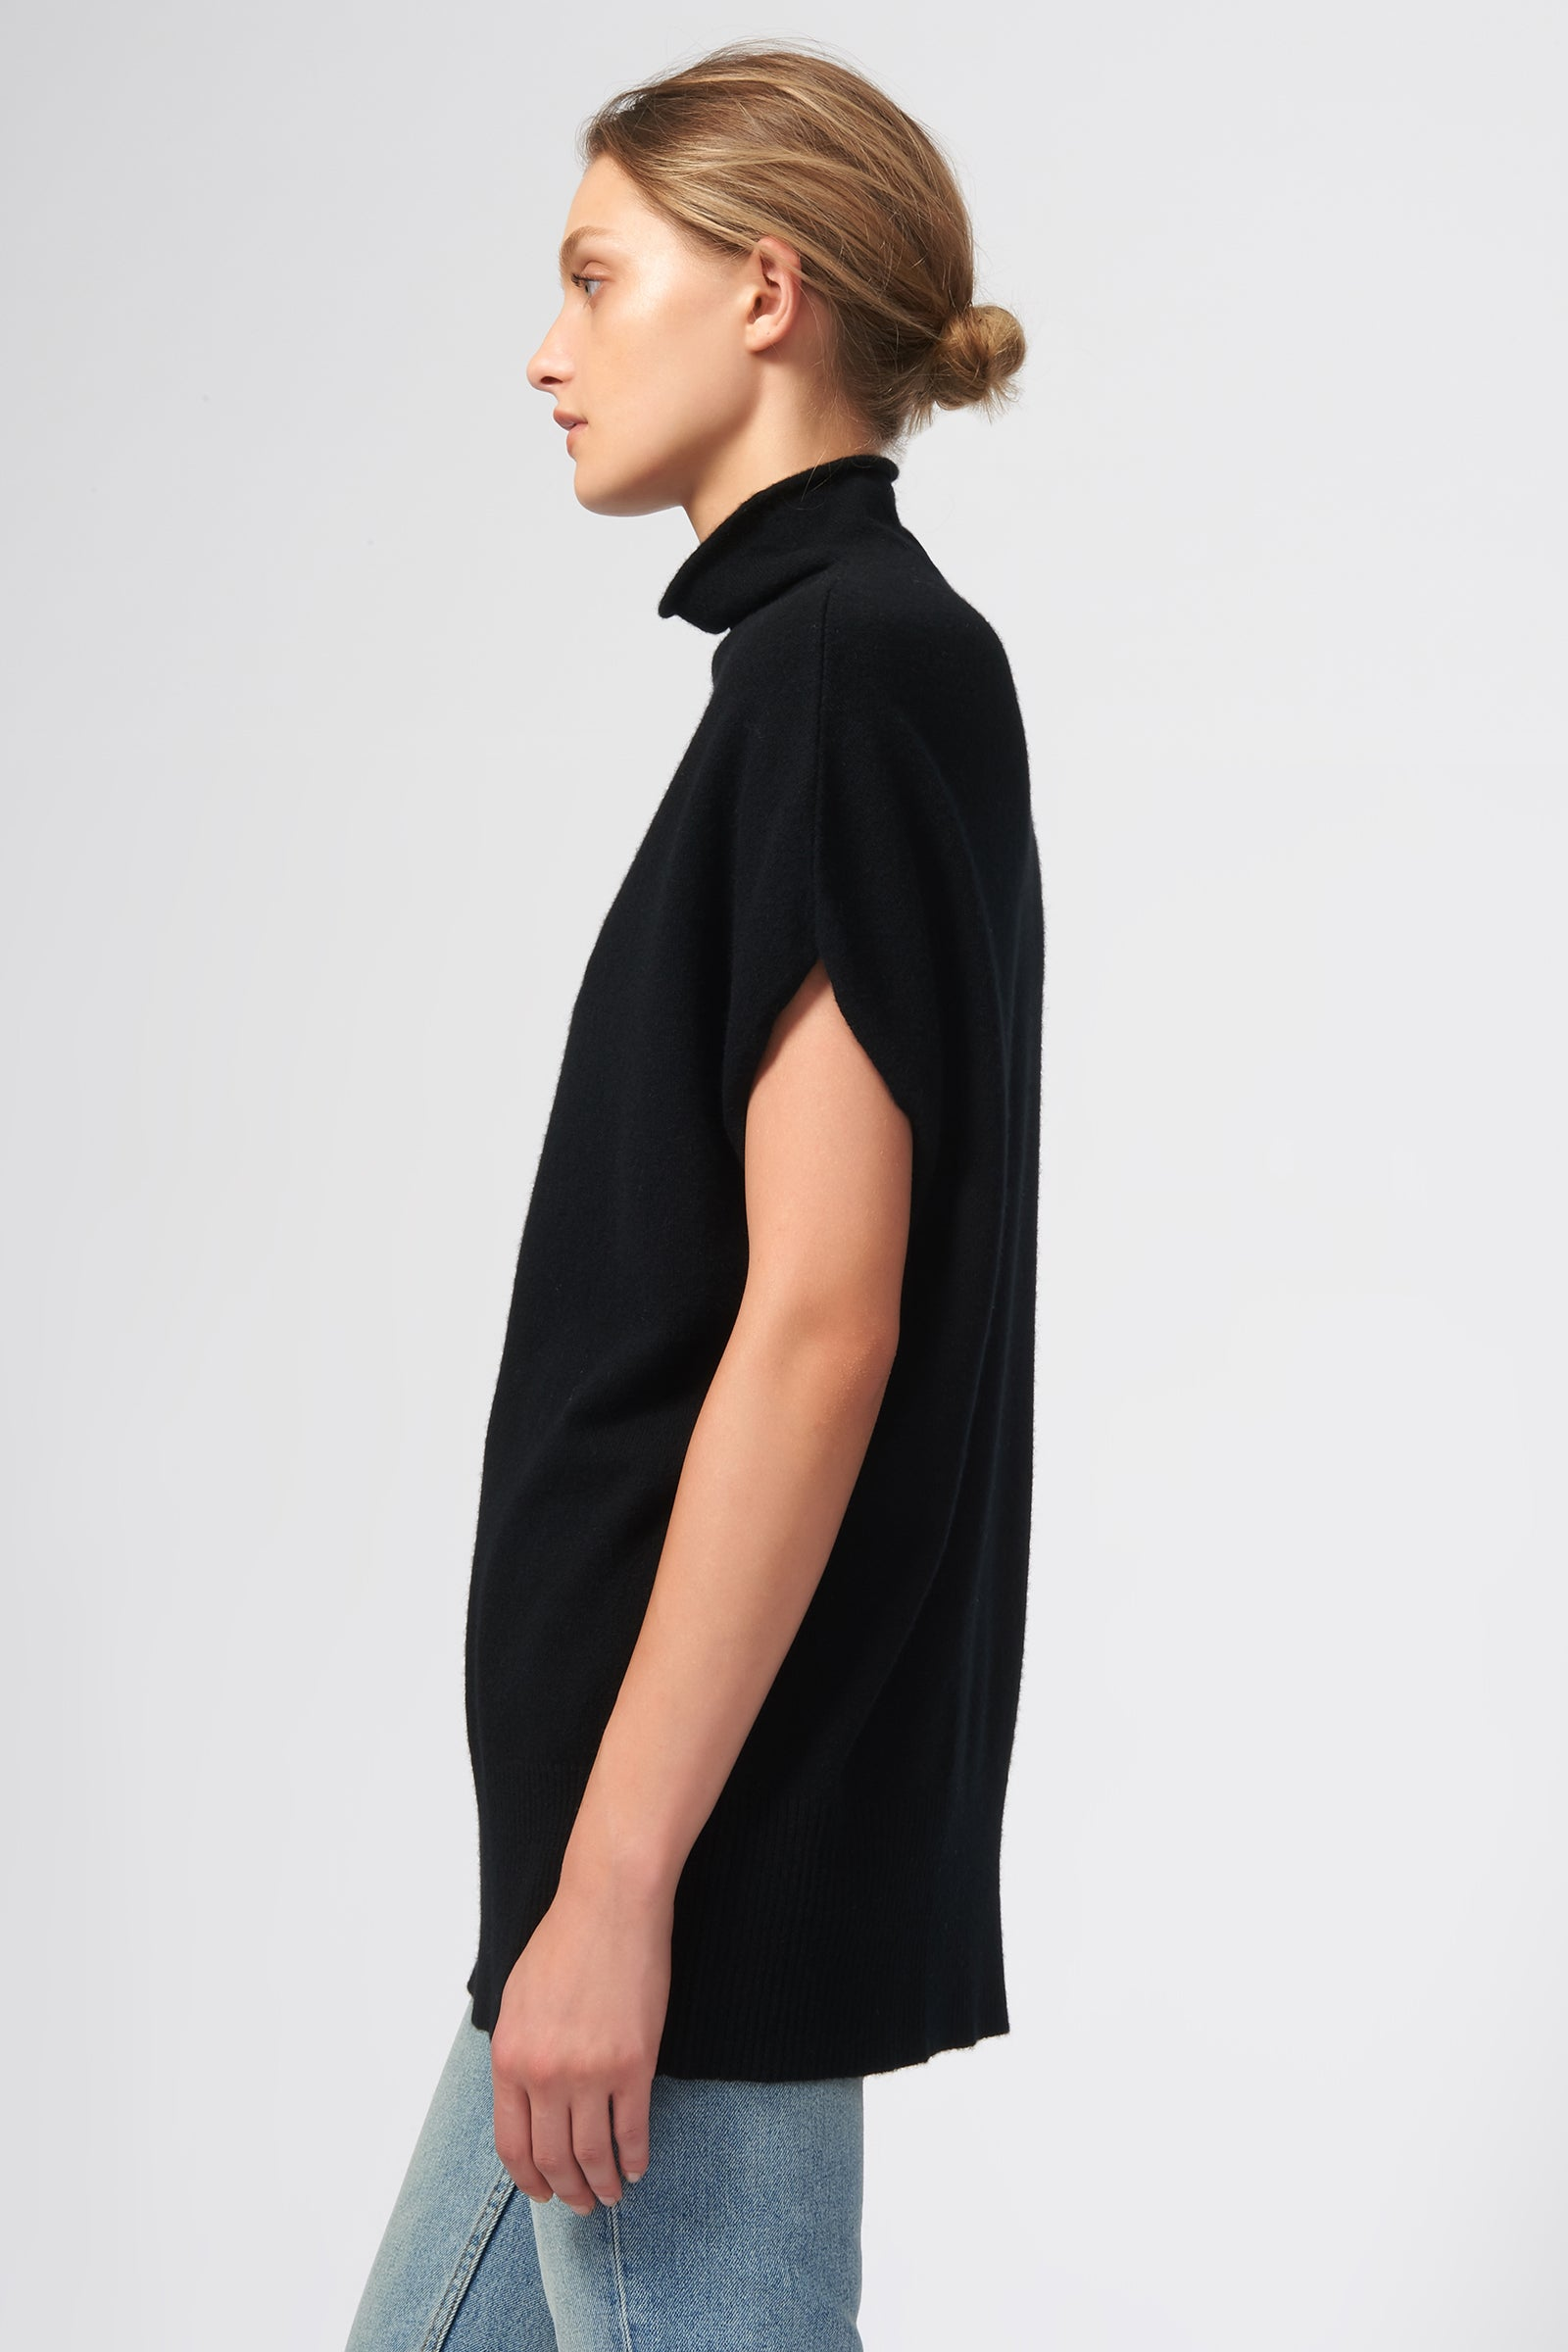 Kal Rieman Cashmere Funnelneck in Black on Model Side View